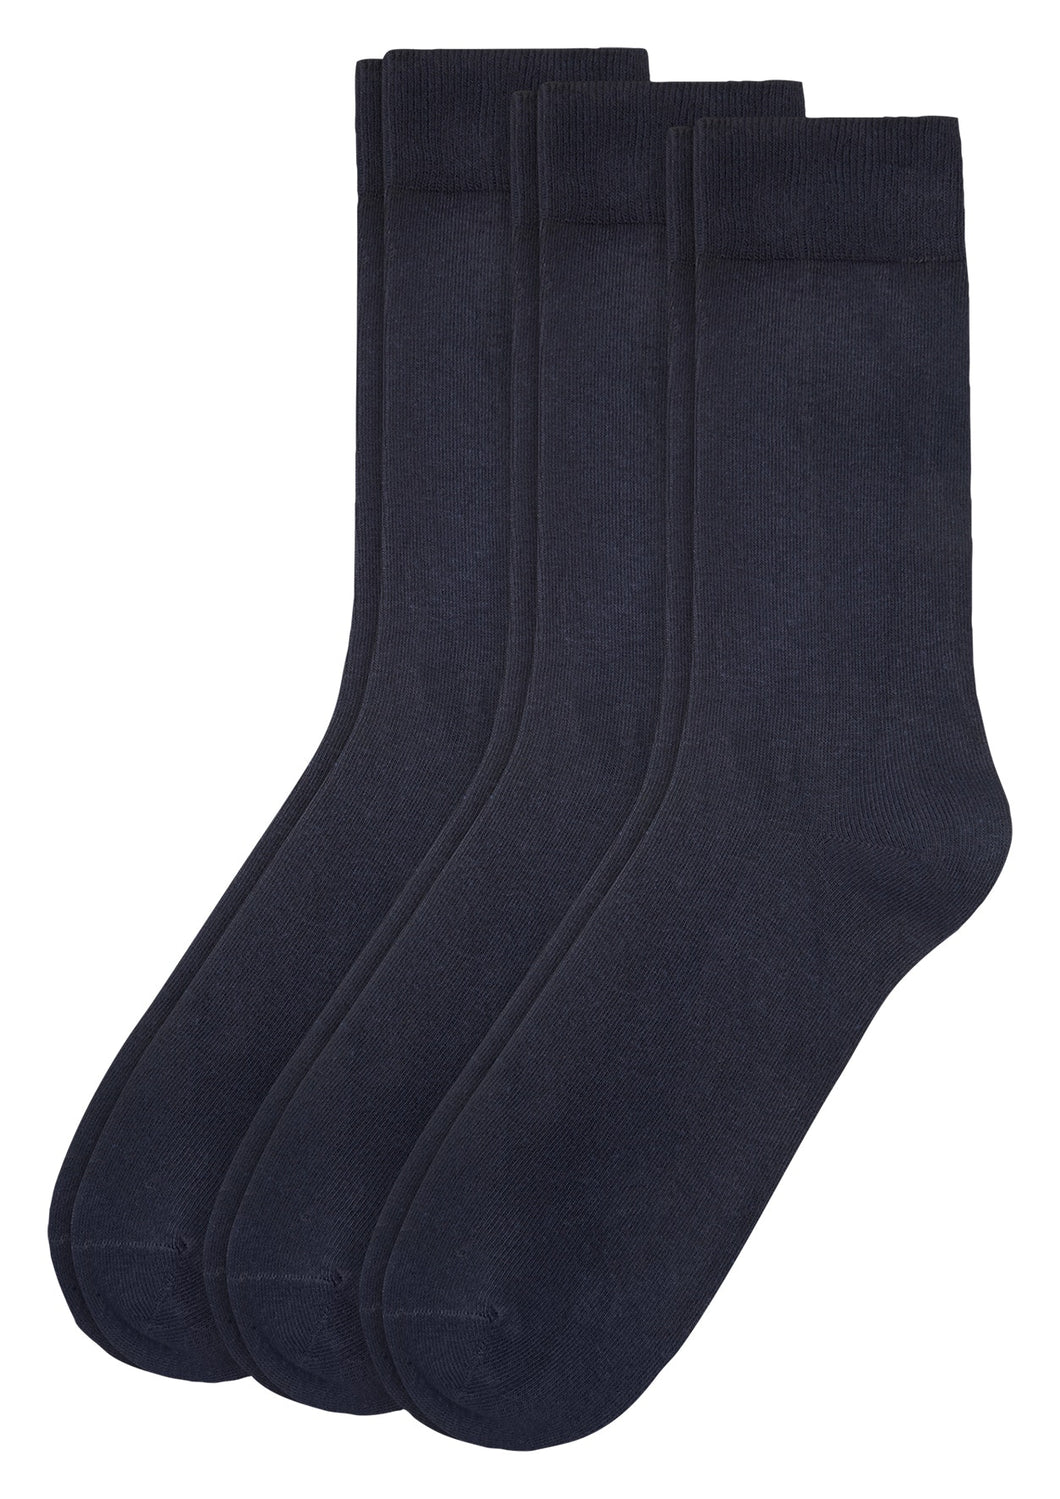 Unisex comfort cotton Socks 3p - 000003403